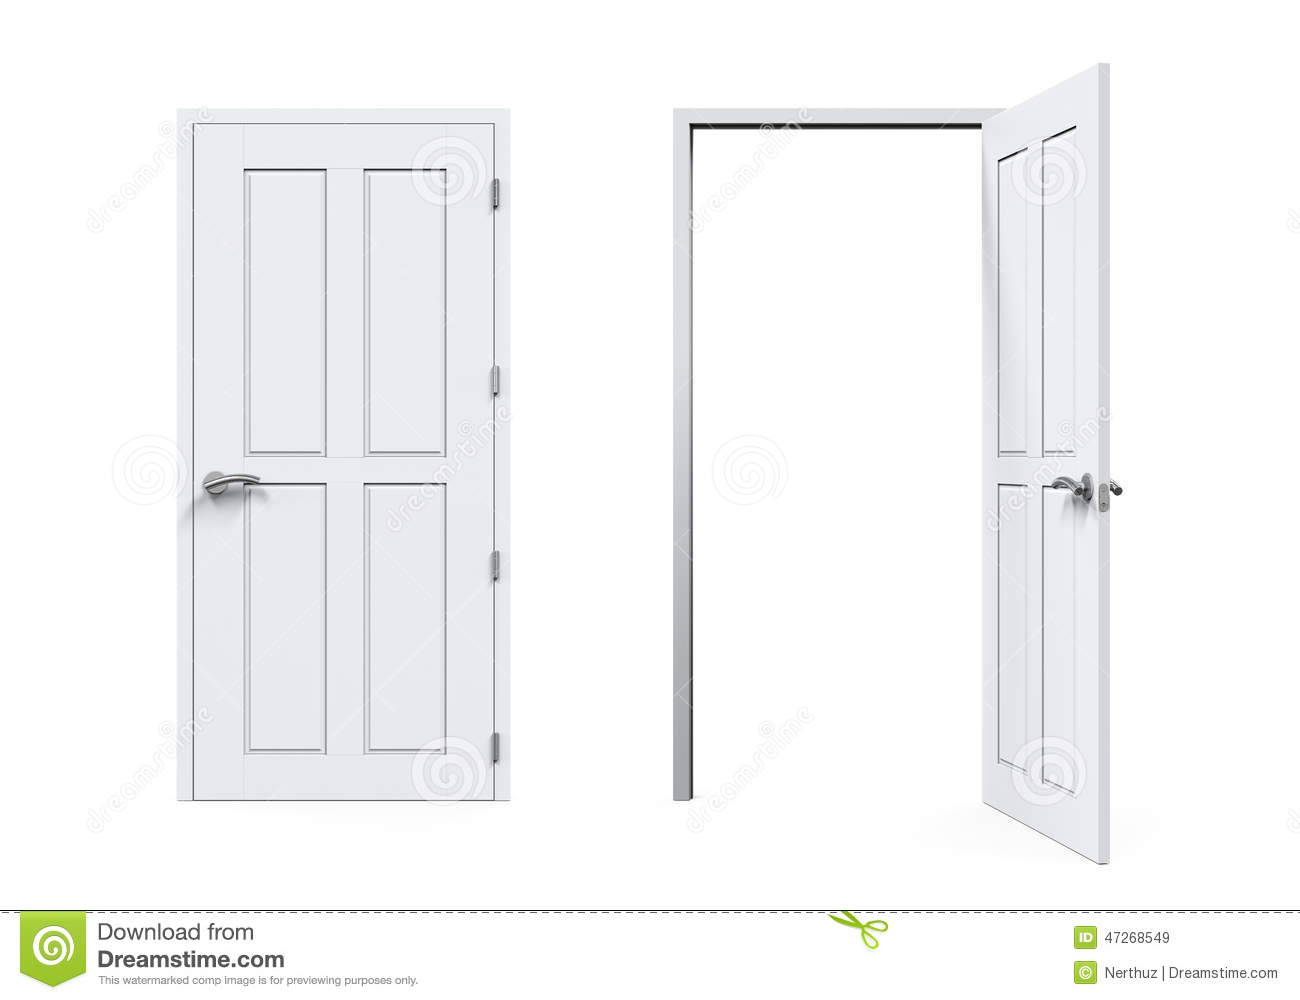 Ferm et portes ouvertes d 39 isolement illustration stock for Porte qui ferme mal